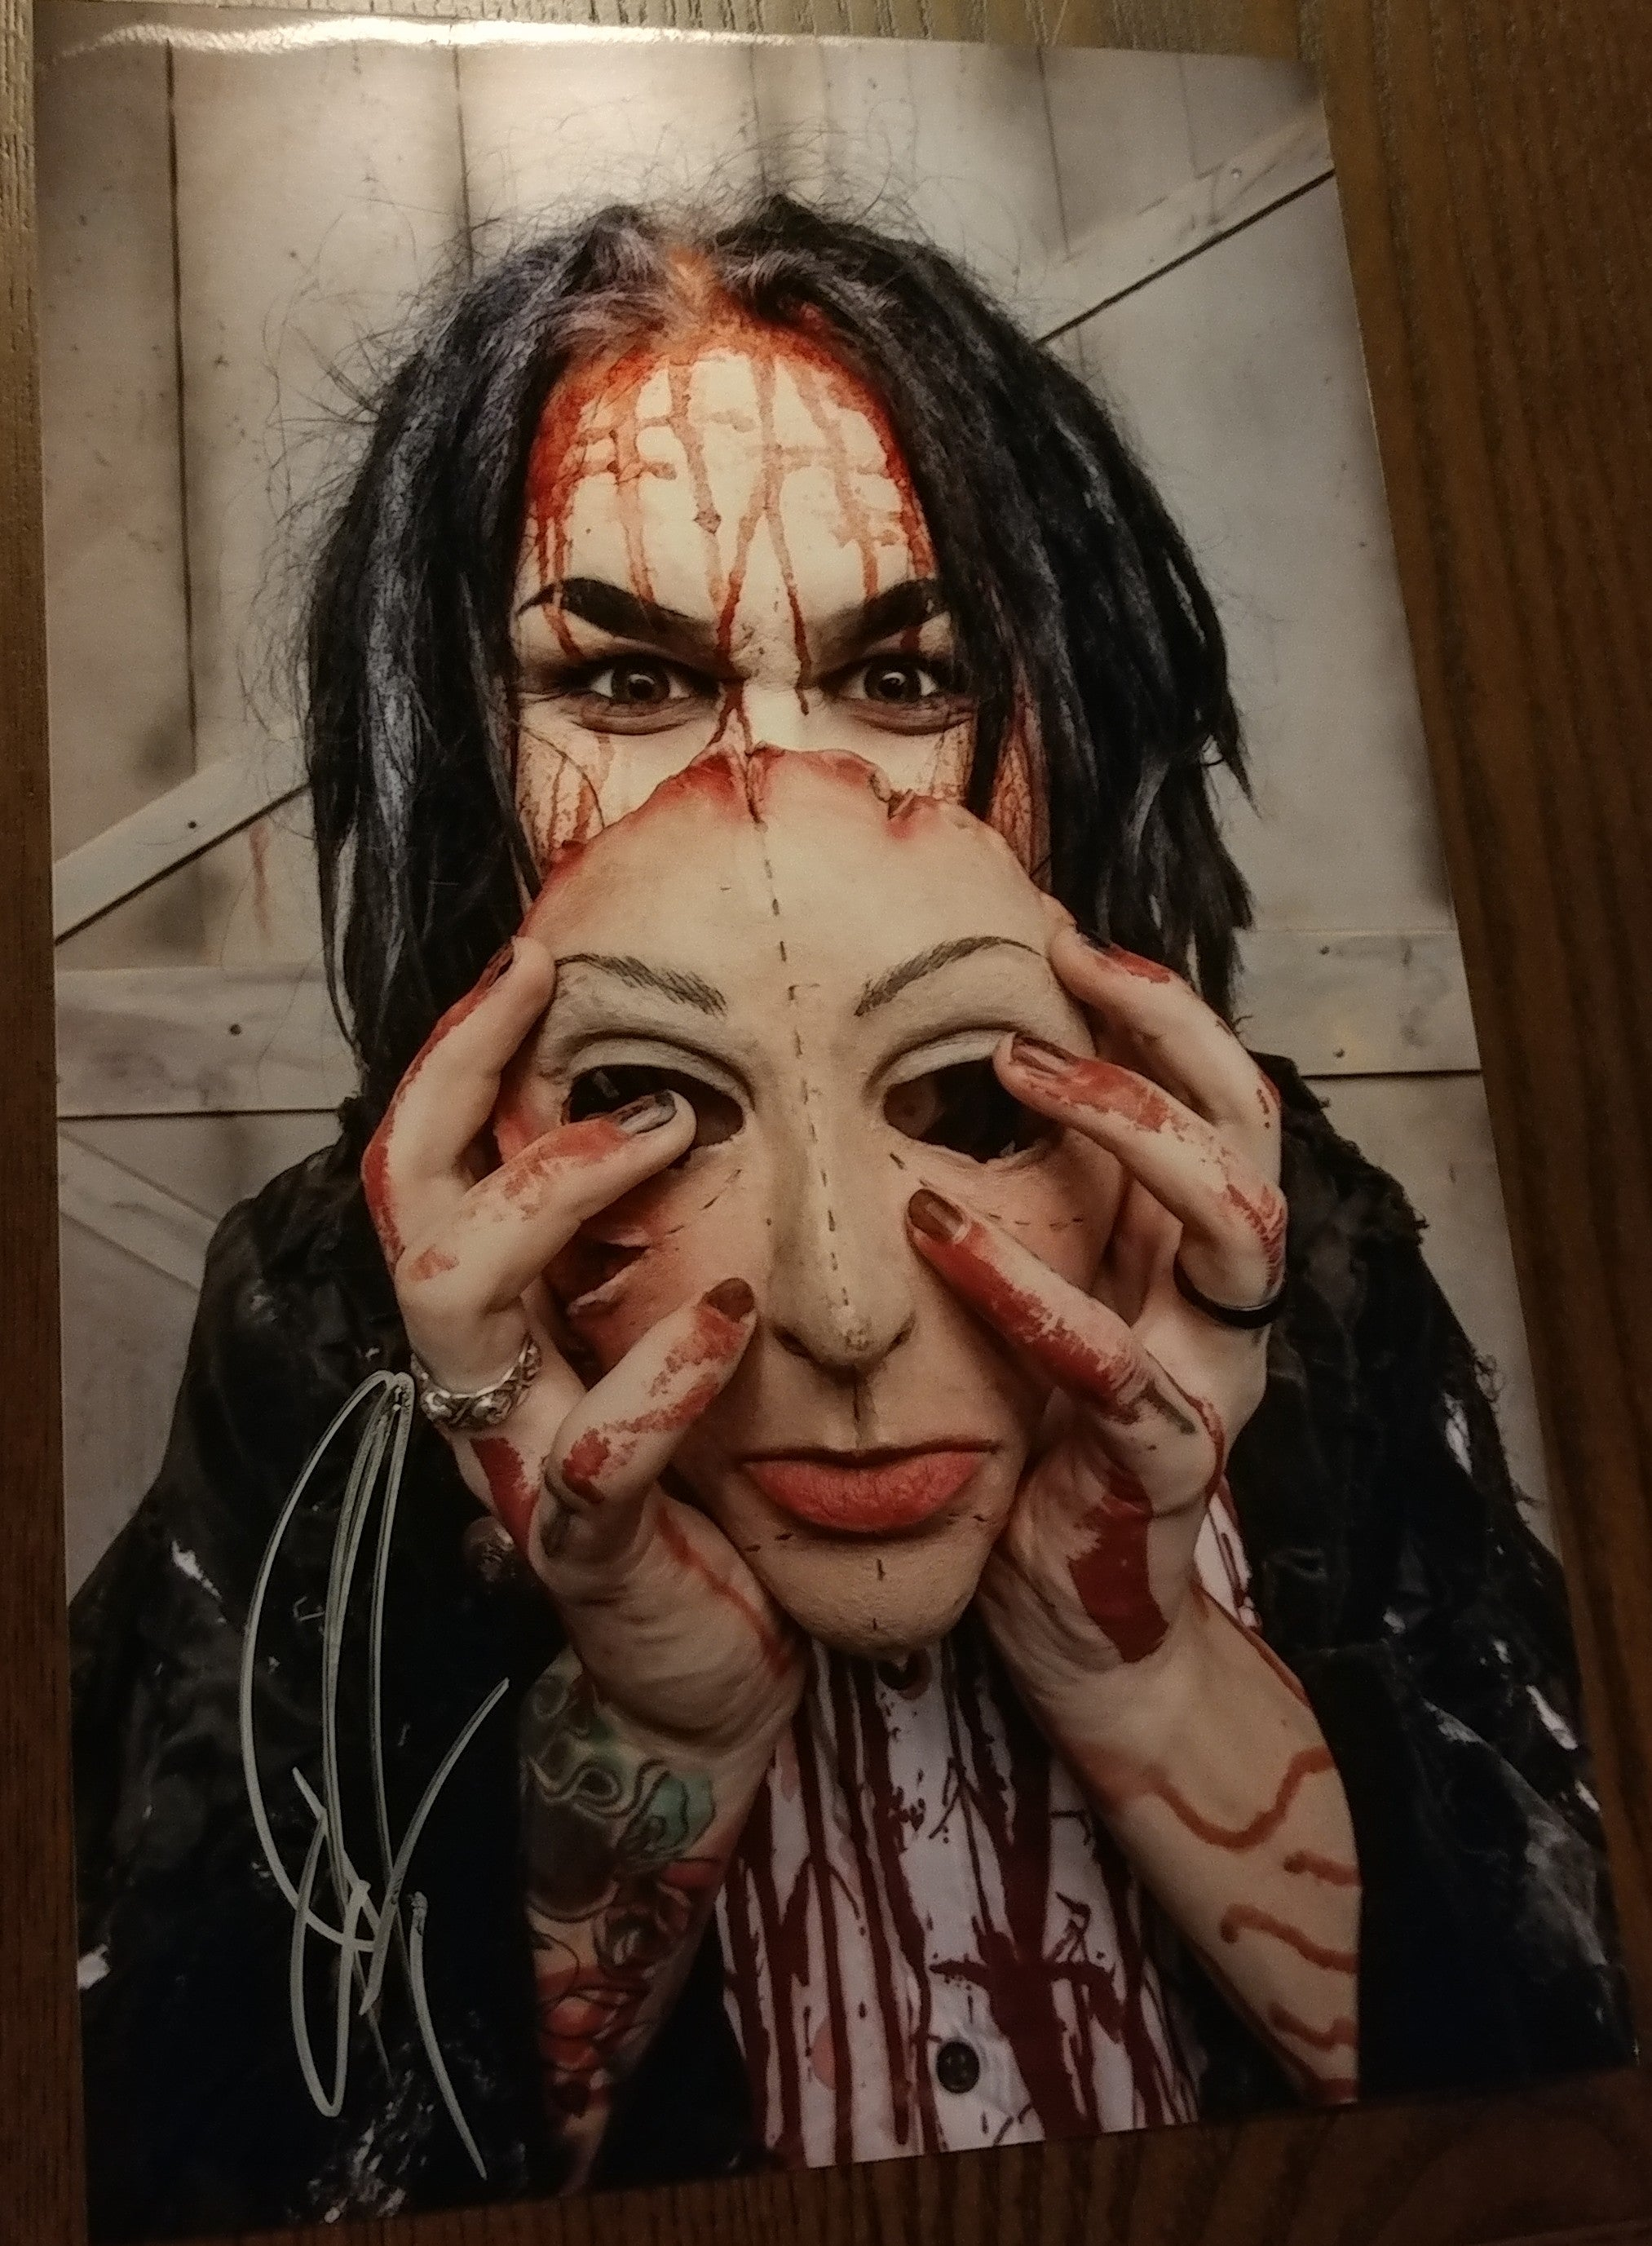 Ghost - Dead Skin Mask signed 8x12 (damaged)